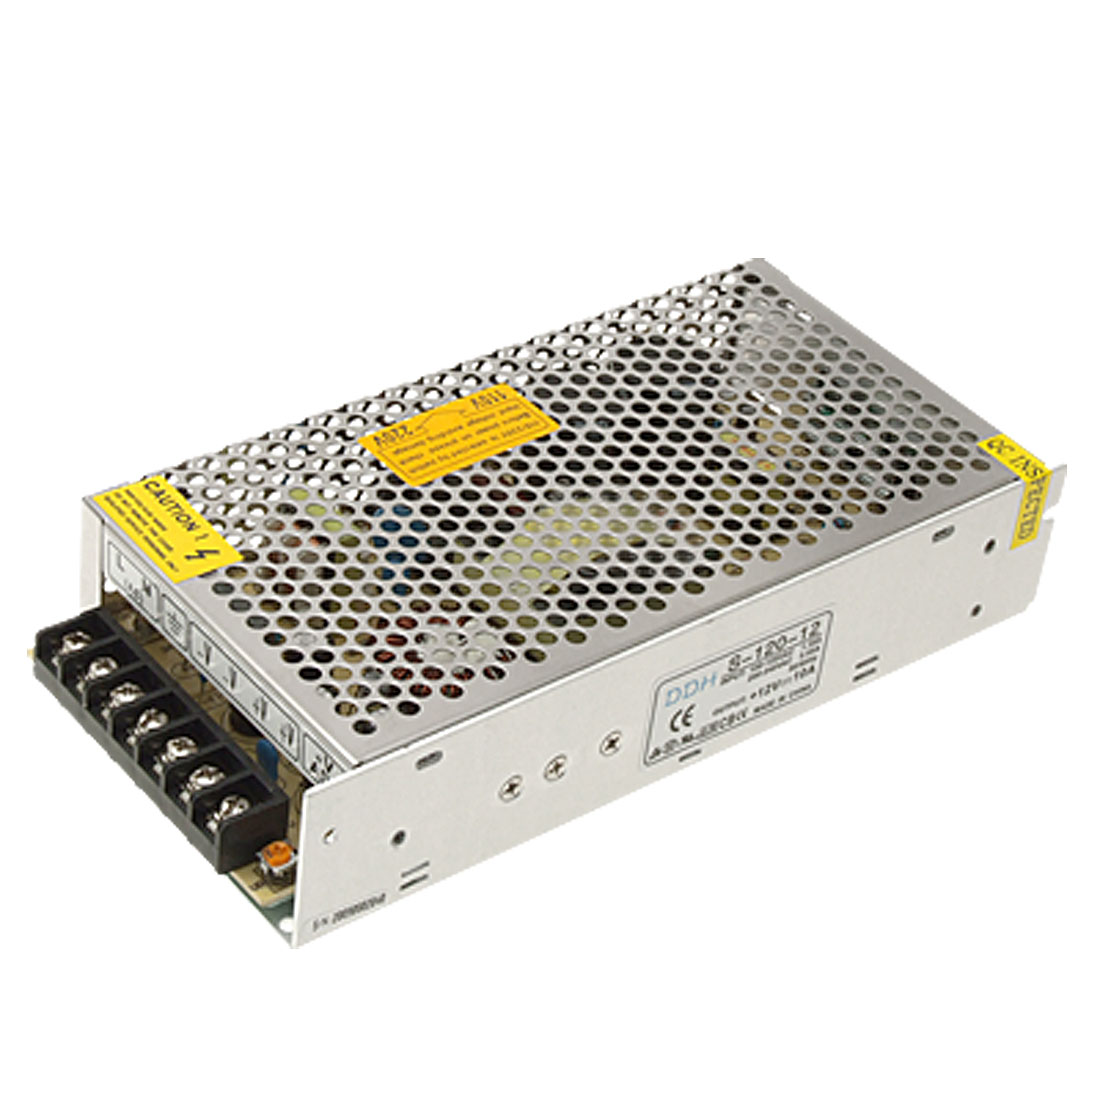 AC 110-220V DC 12V 10A 120W Switching Power Supply Driver for LED Strip Light CCTV